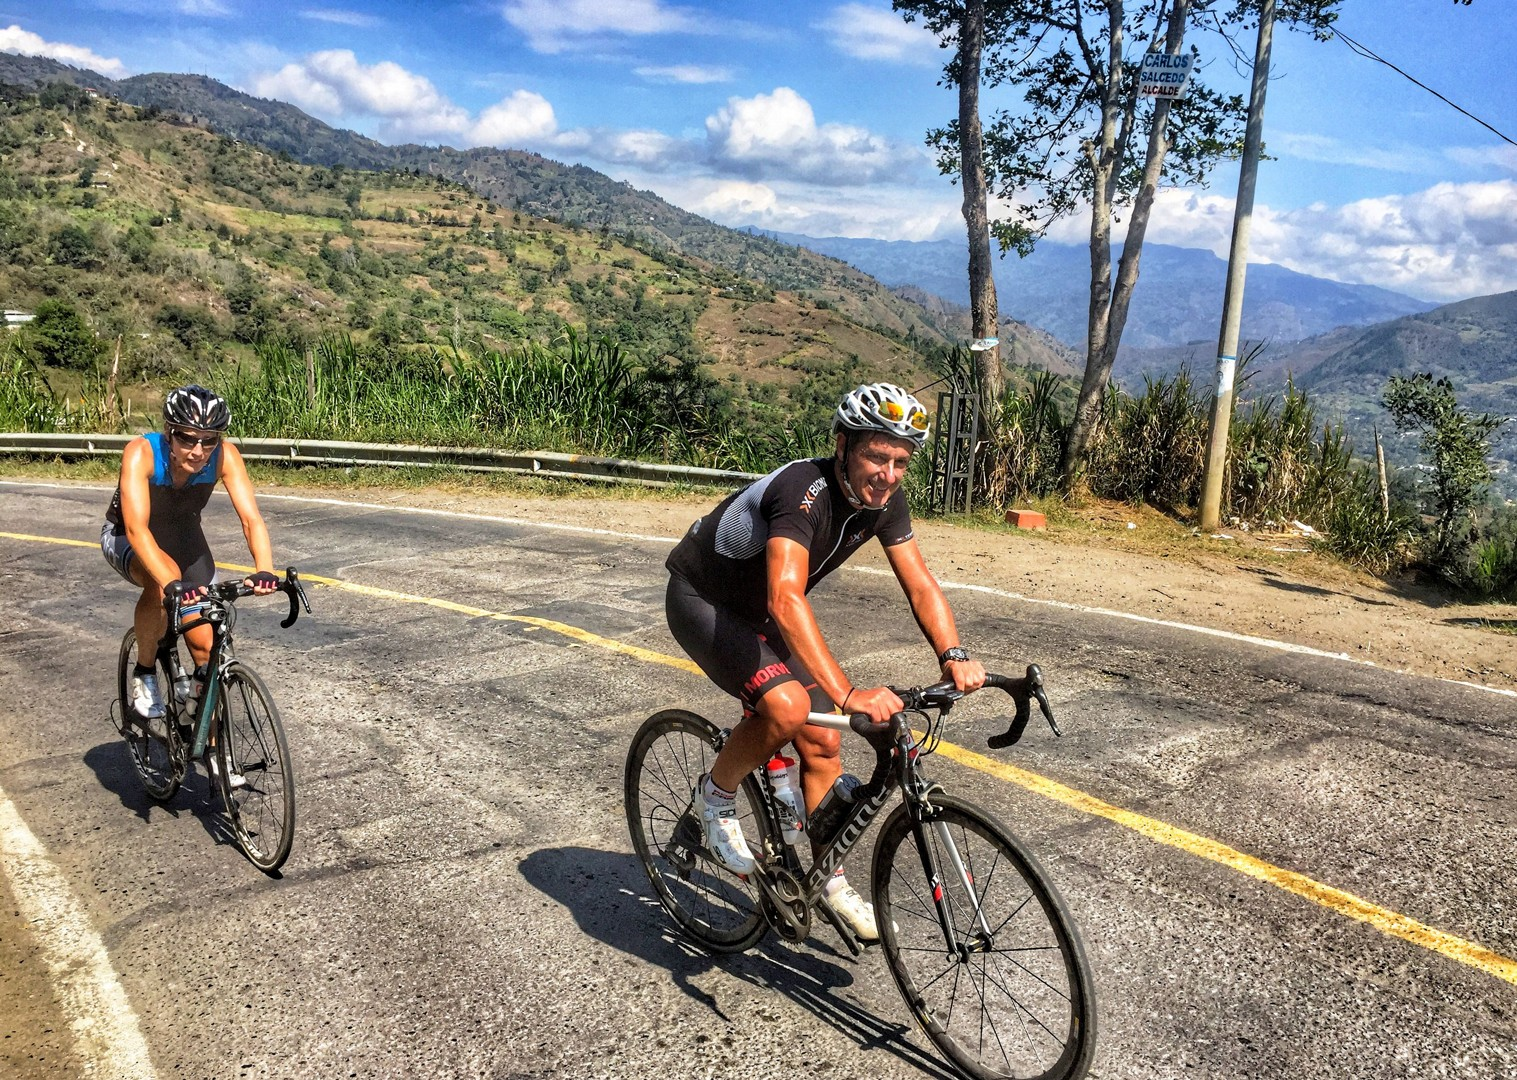 Andean-highlands-guided-road-cycling-holiday-emerald-mountains-colombia.JPG - Colombia - Tres Cordilleras - Guided Road Cycling Holiday - Road Cycling